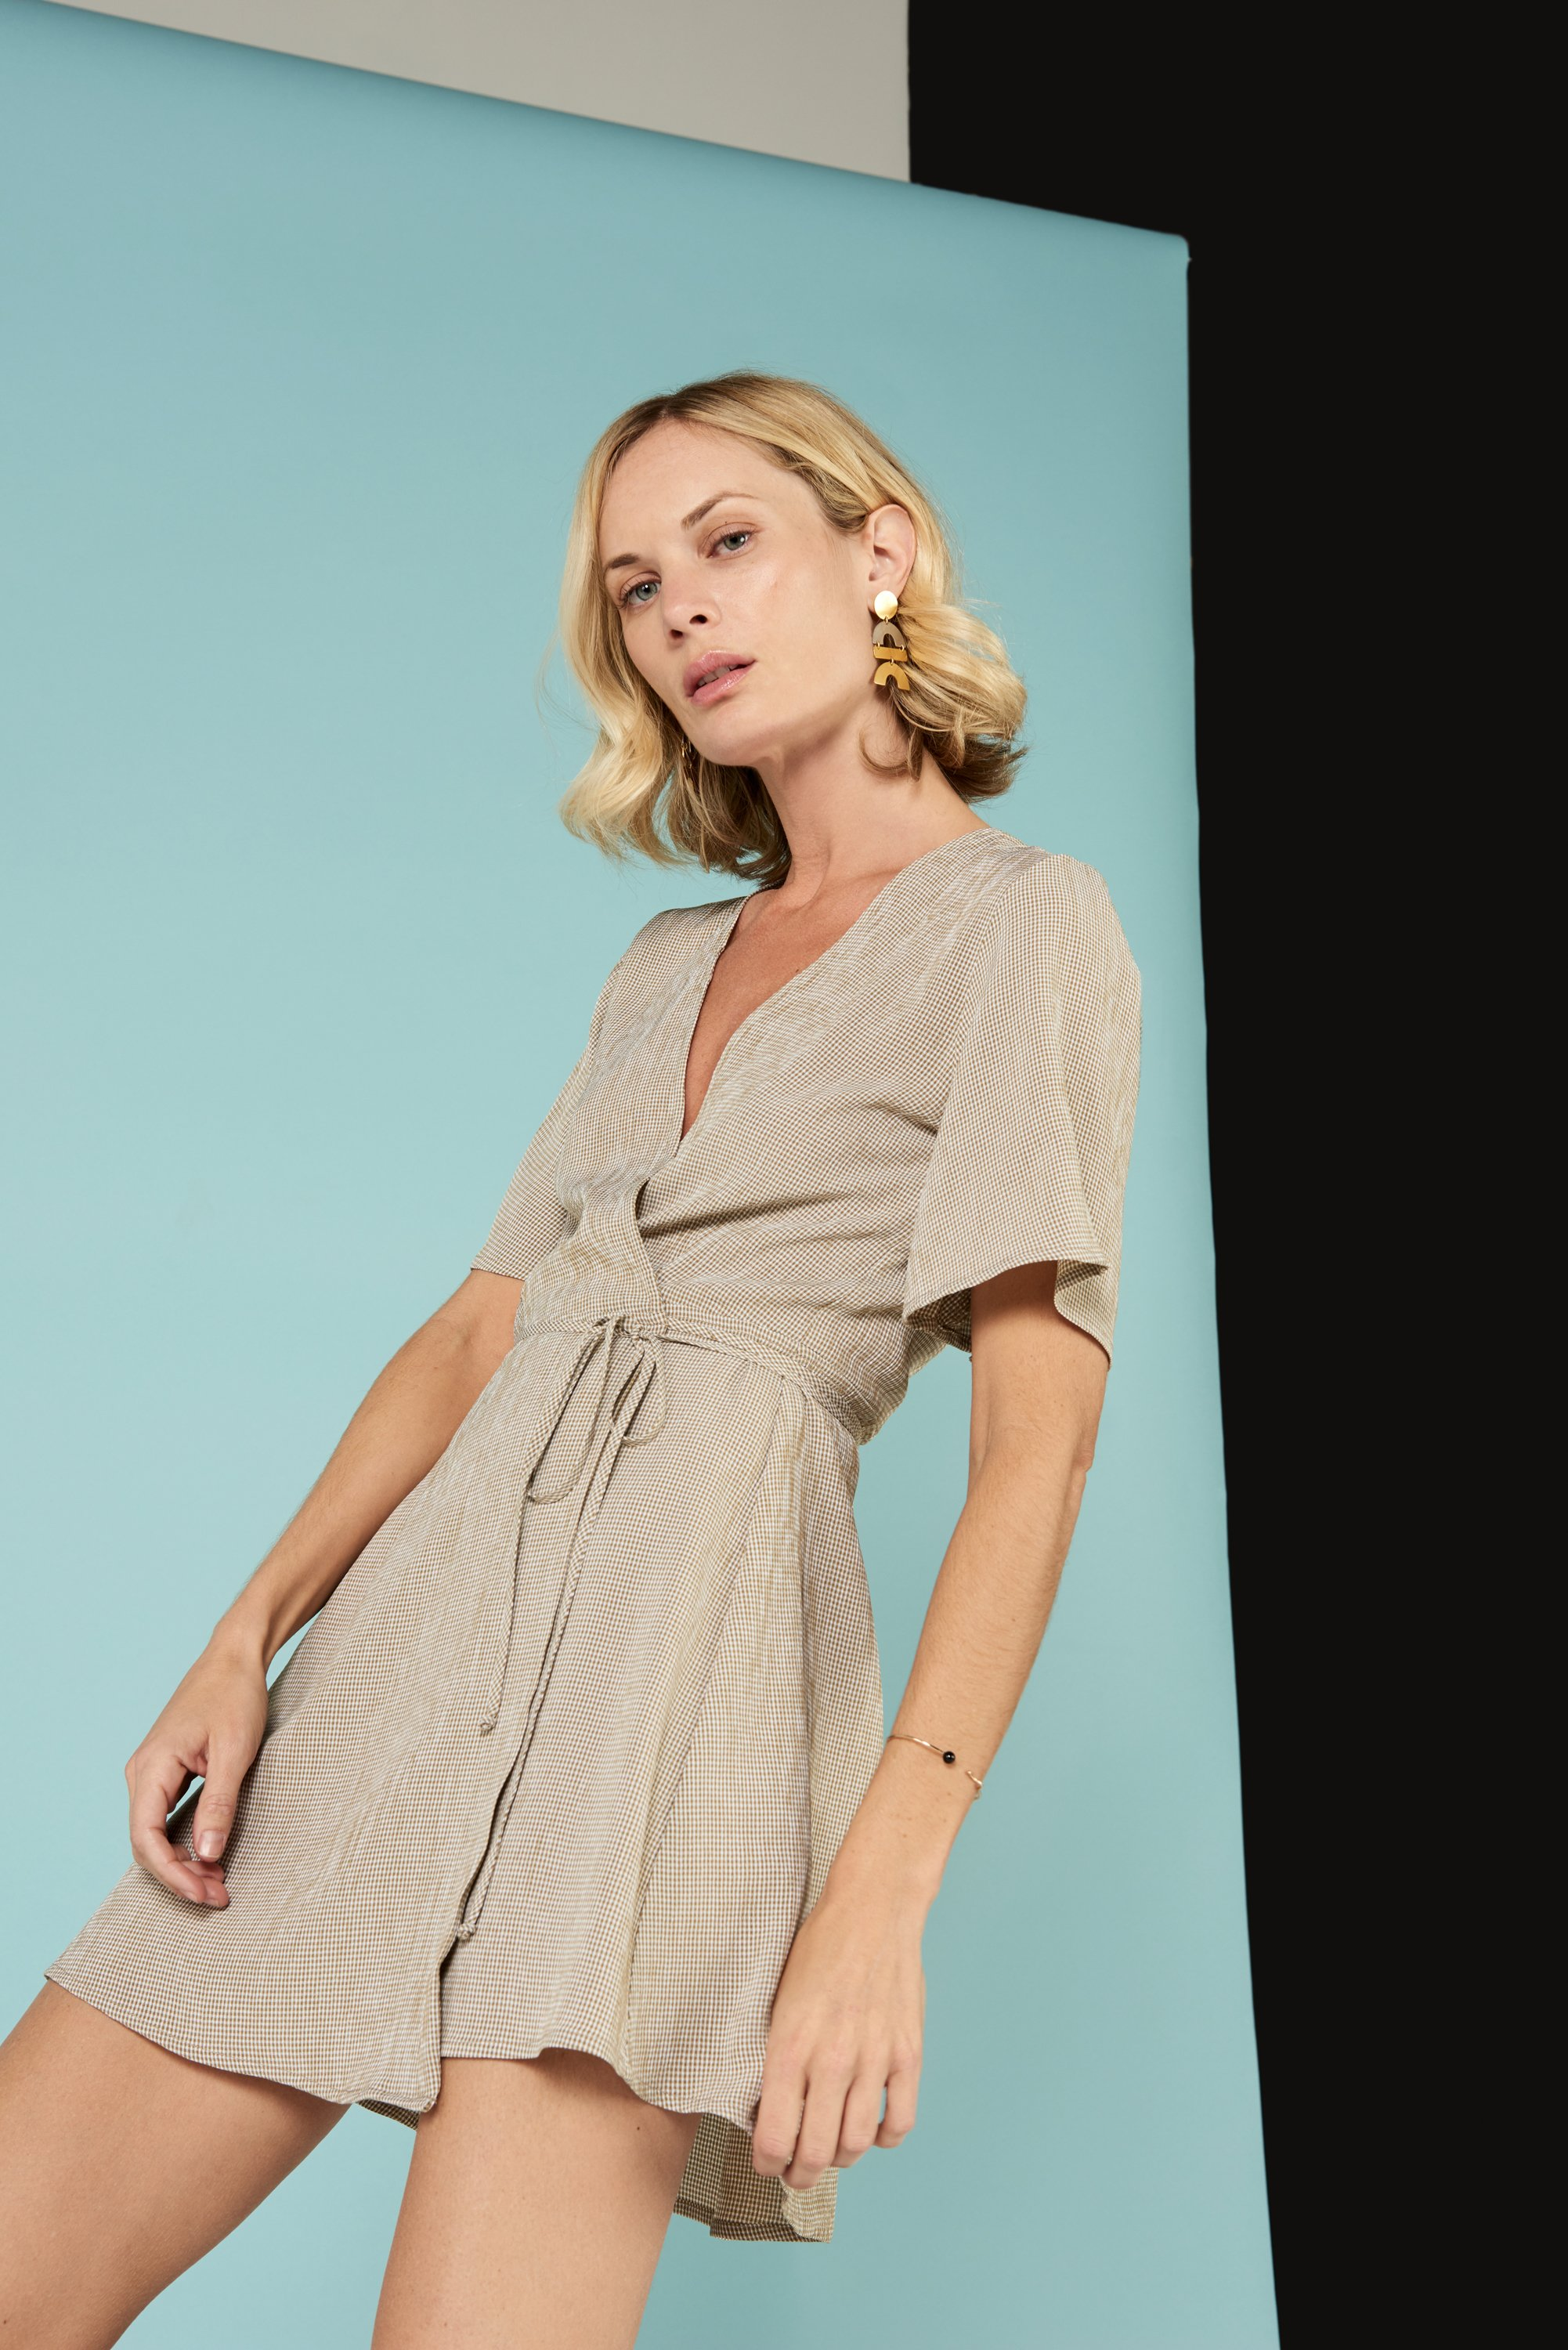 Marianne Wrap Dress in Gingham from Whimsy and Row